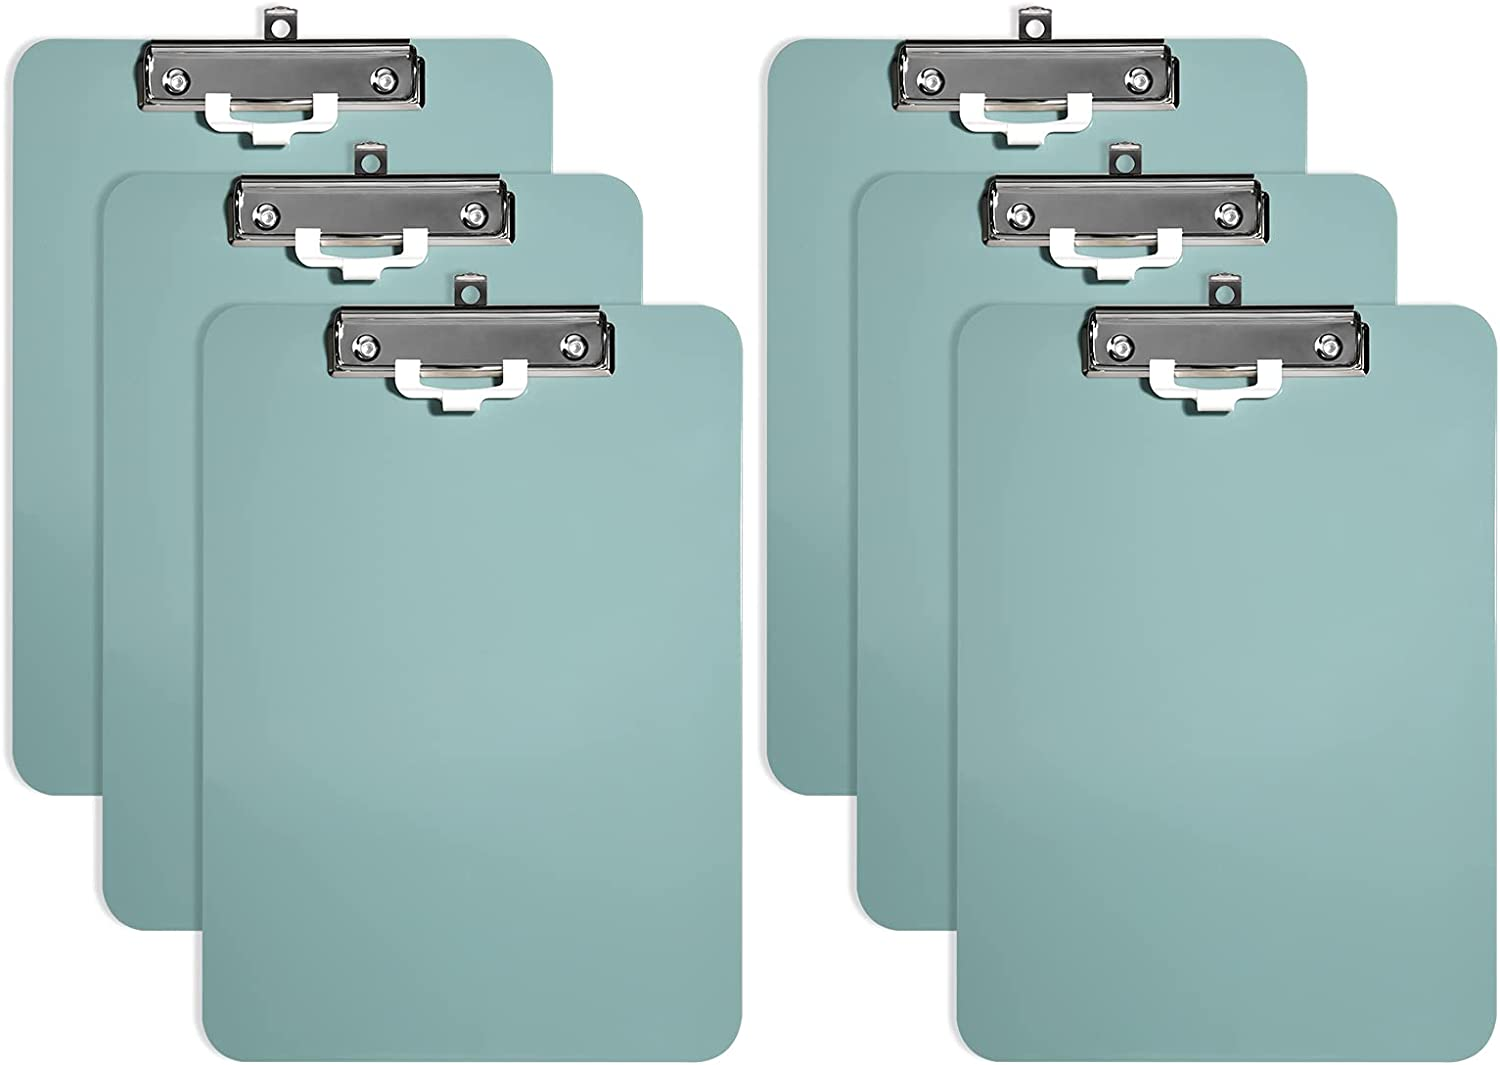 Hongri Plastic Clipboards Set of 6, Green Clipboard Standard A4 Letter Size Clipboards for Nurses, Students and Office, Clipboard with Pen Holder and Low Profile Clip, Size 12.5 x 9 Inch, (Green)